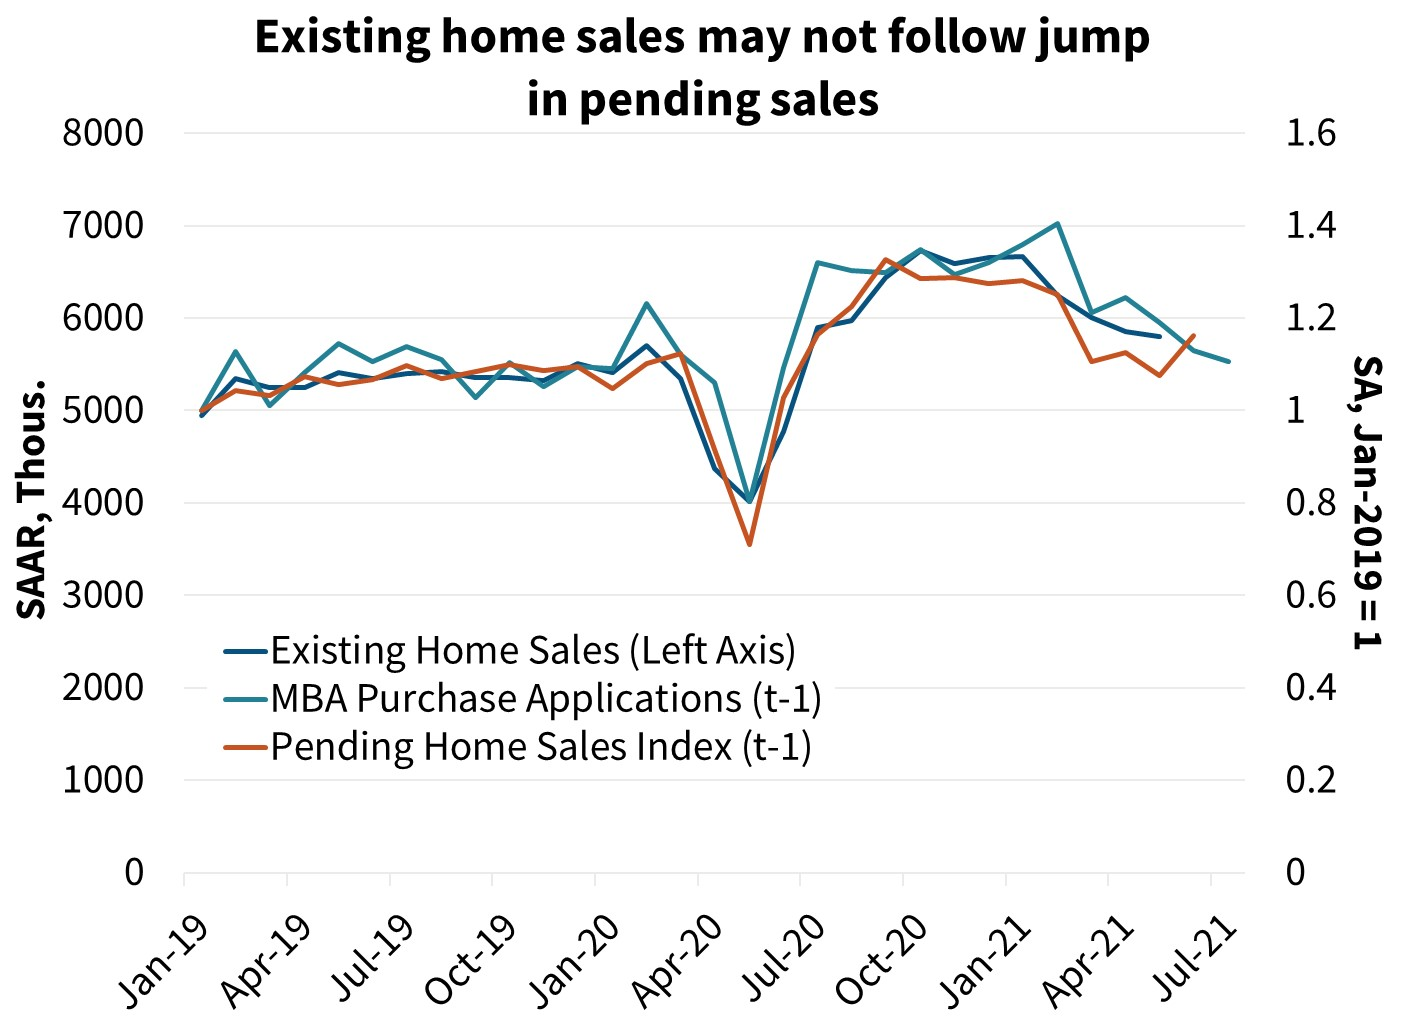 Existing home sales may not follow jump in pending sales